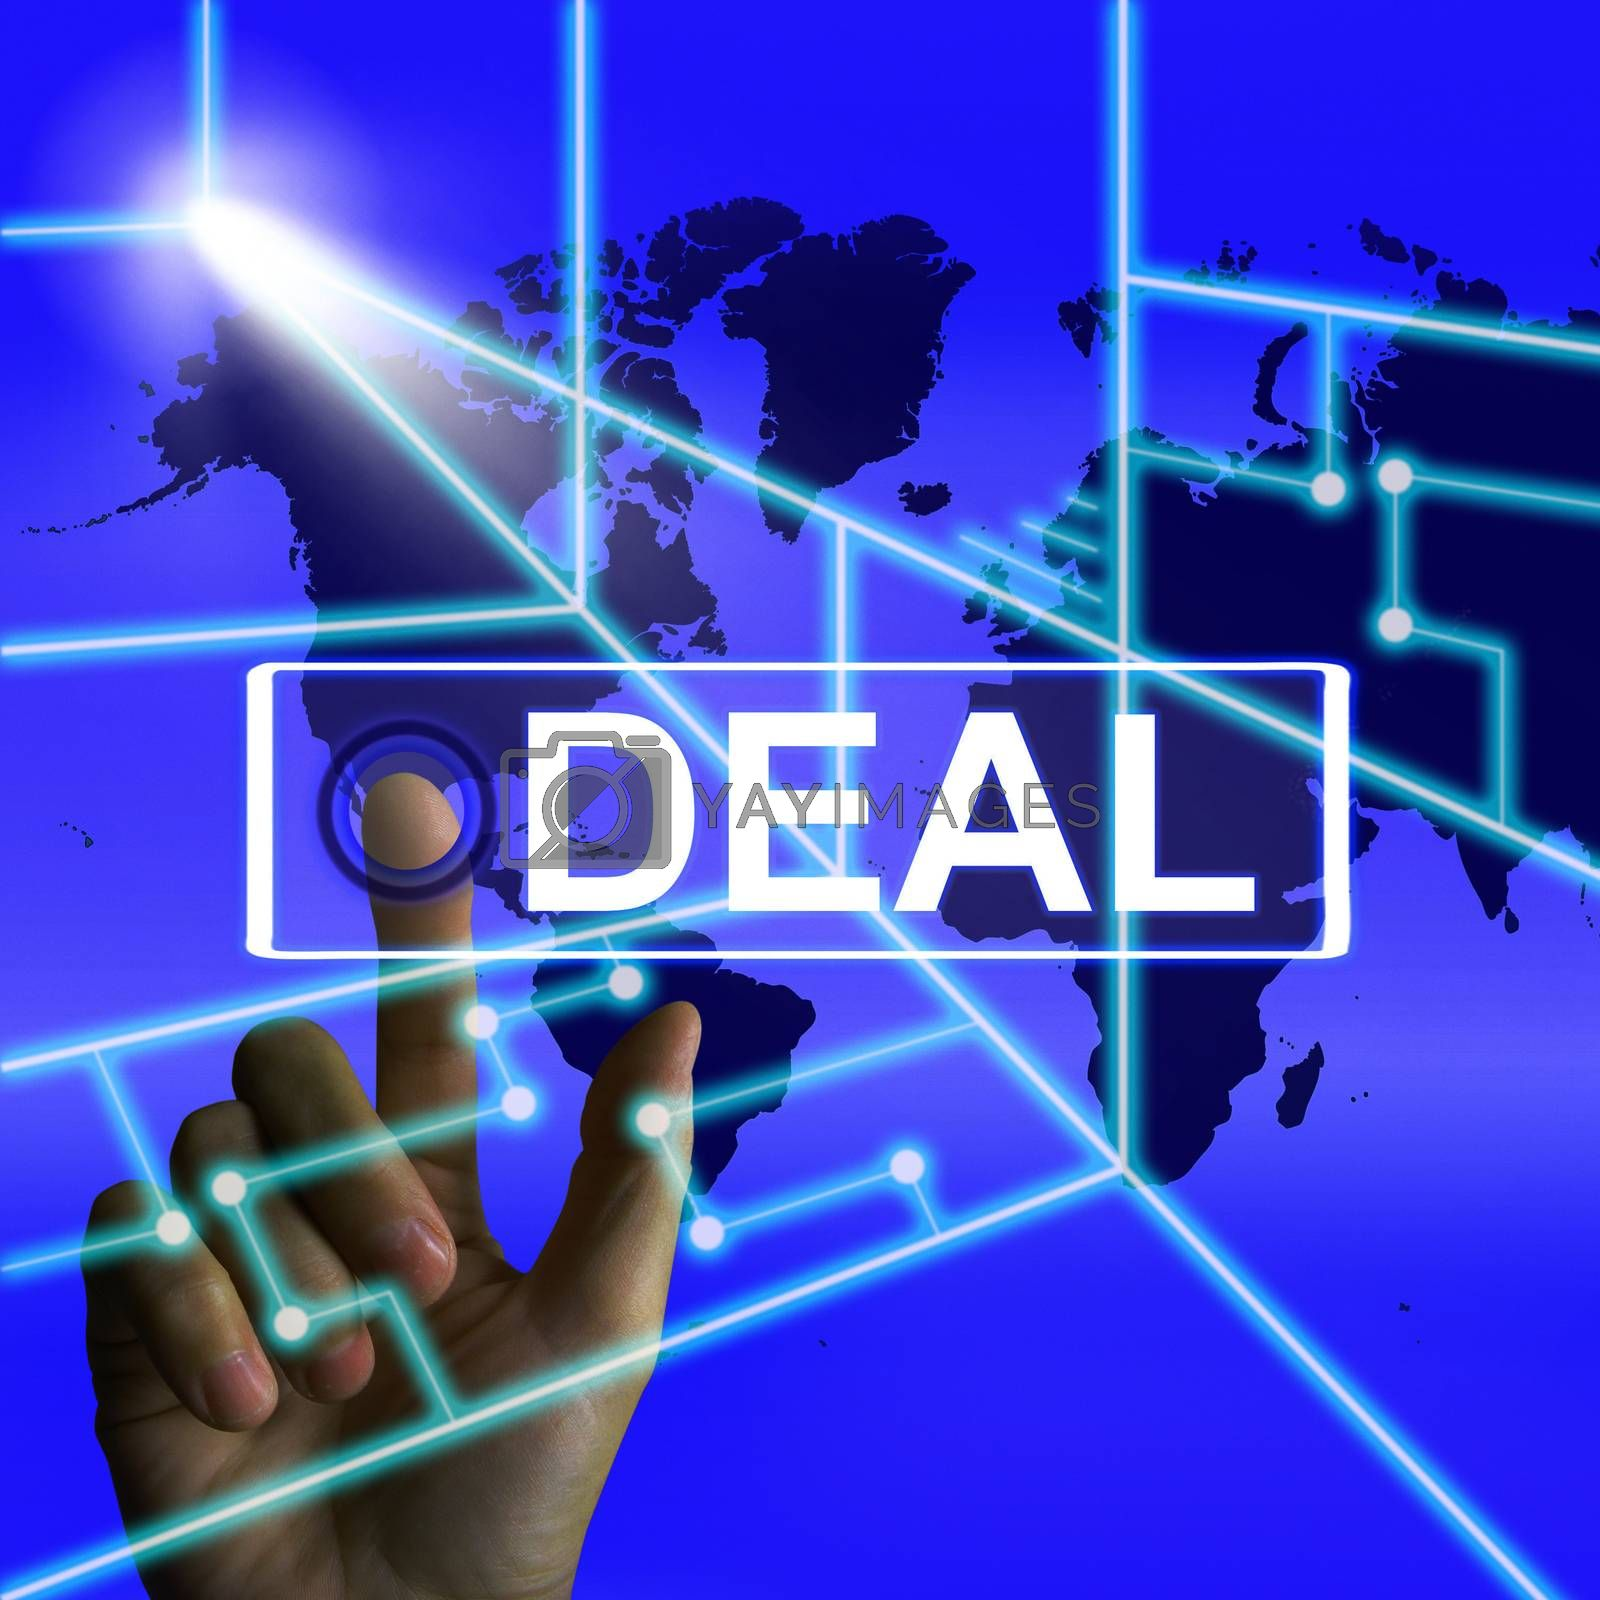 Deal Screen Refers to Worldwide or International Agreement by stuartmiles